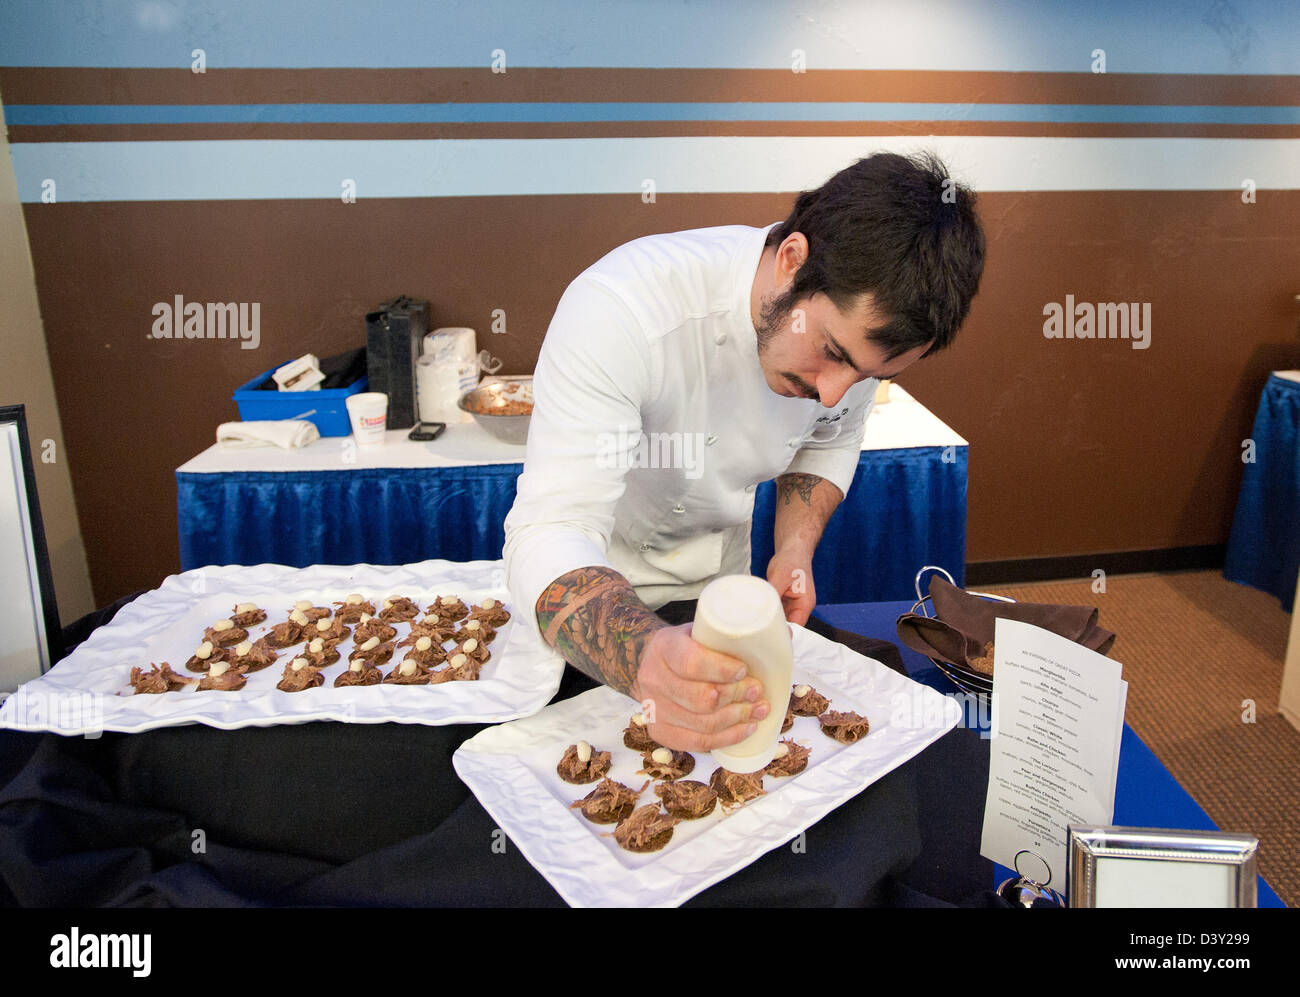 Chef making duck appetizers during a business expo in the USA - Stock Image